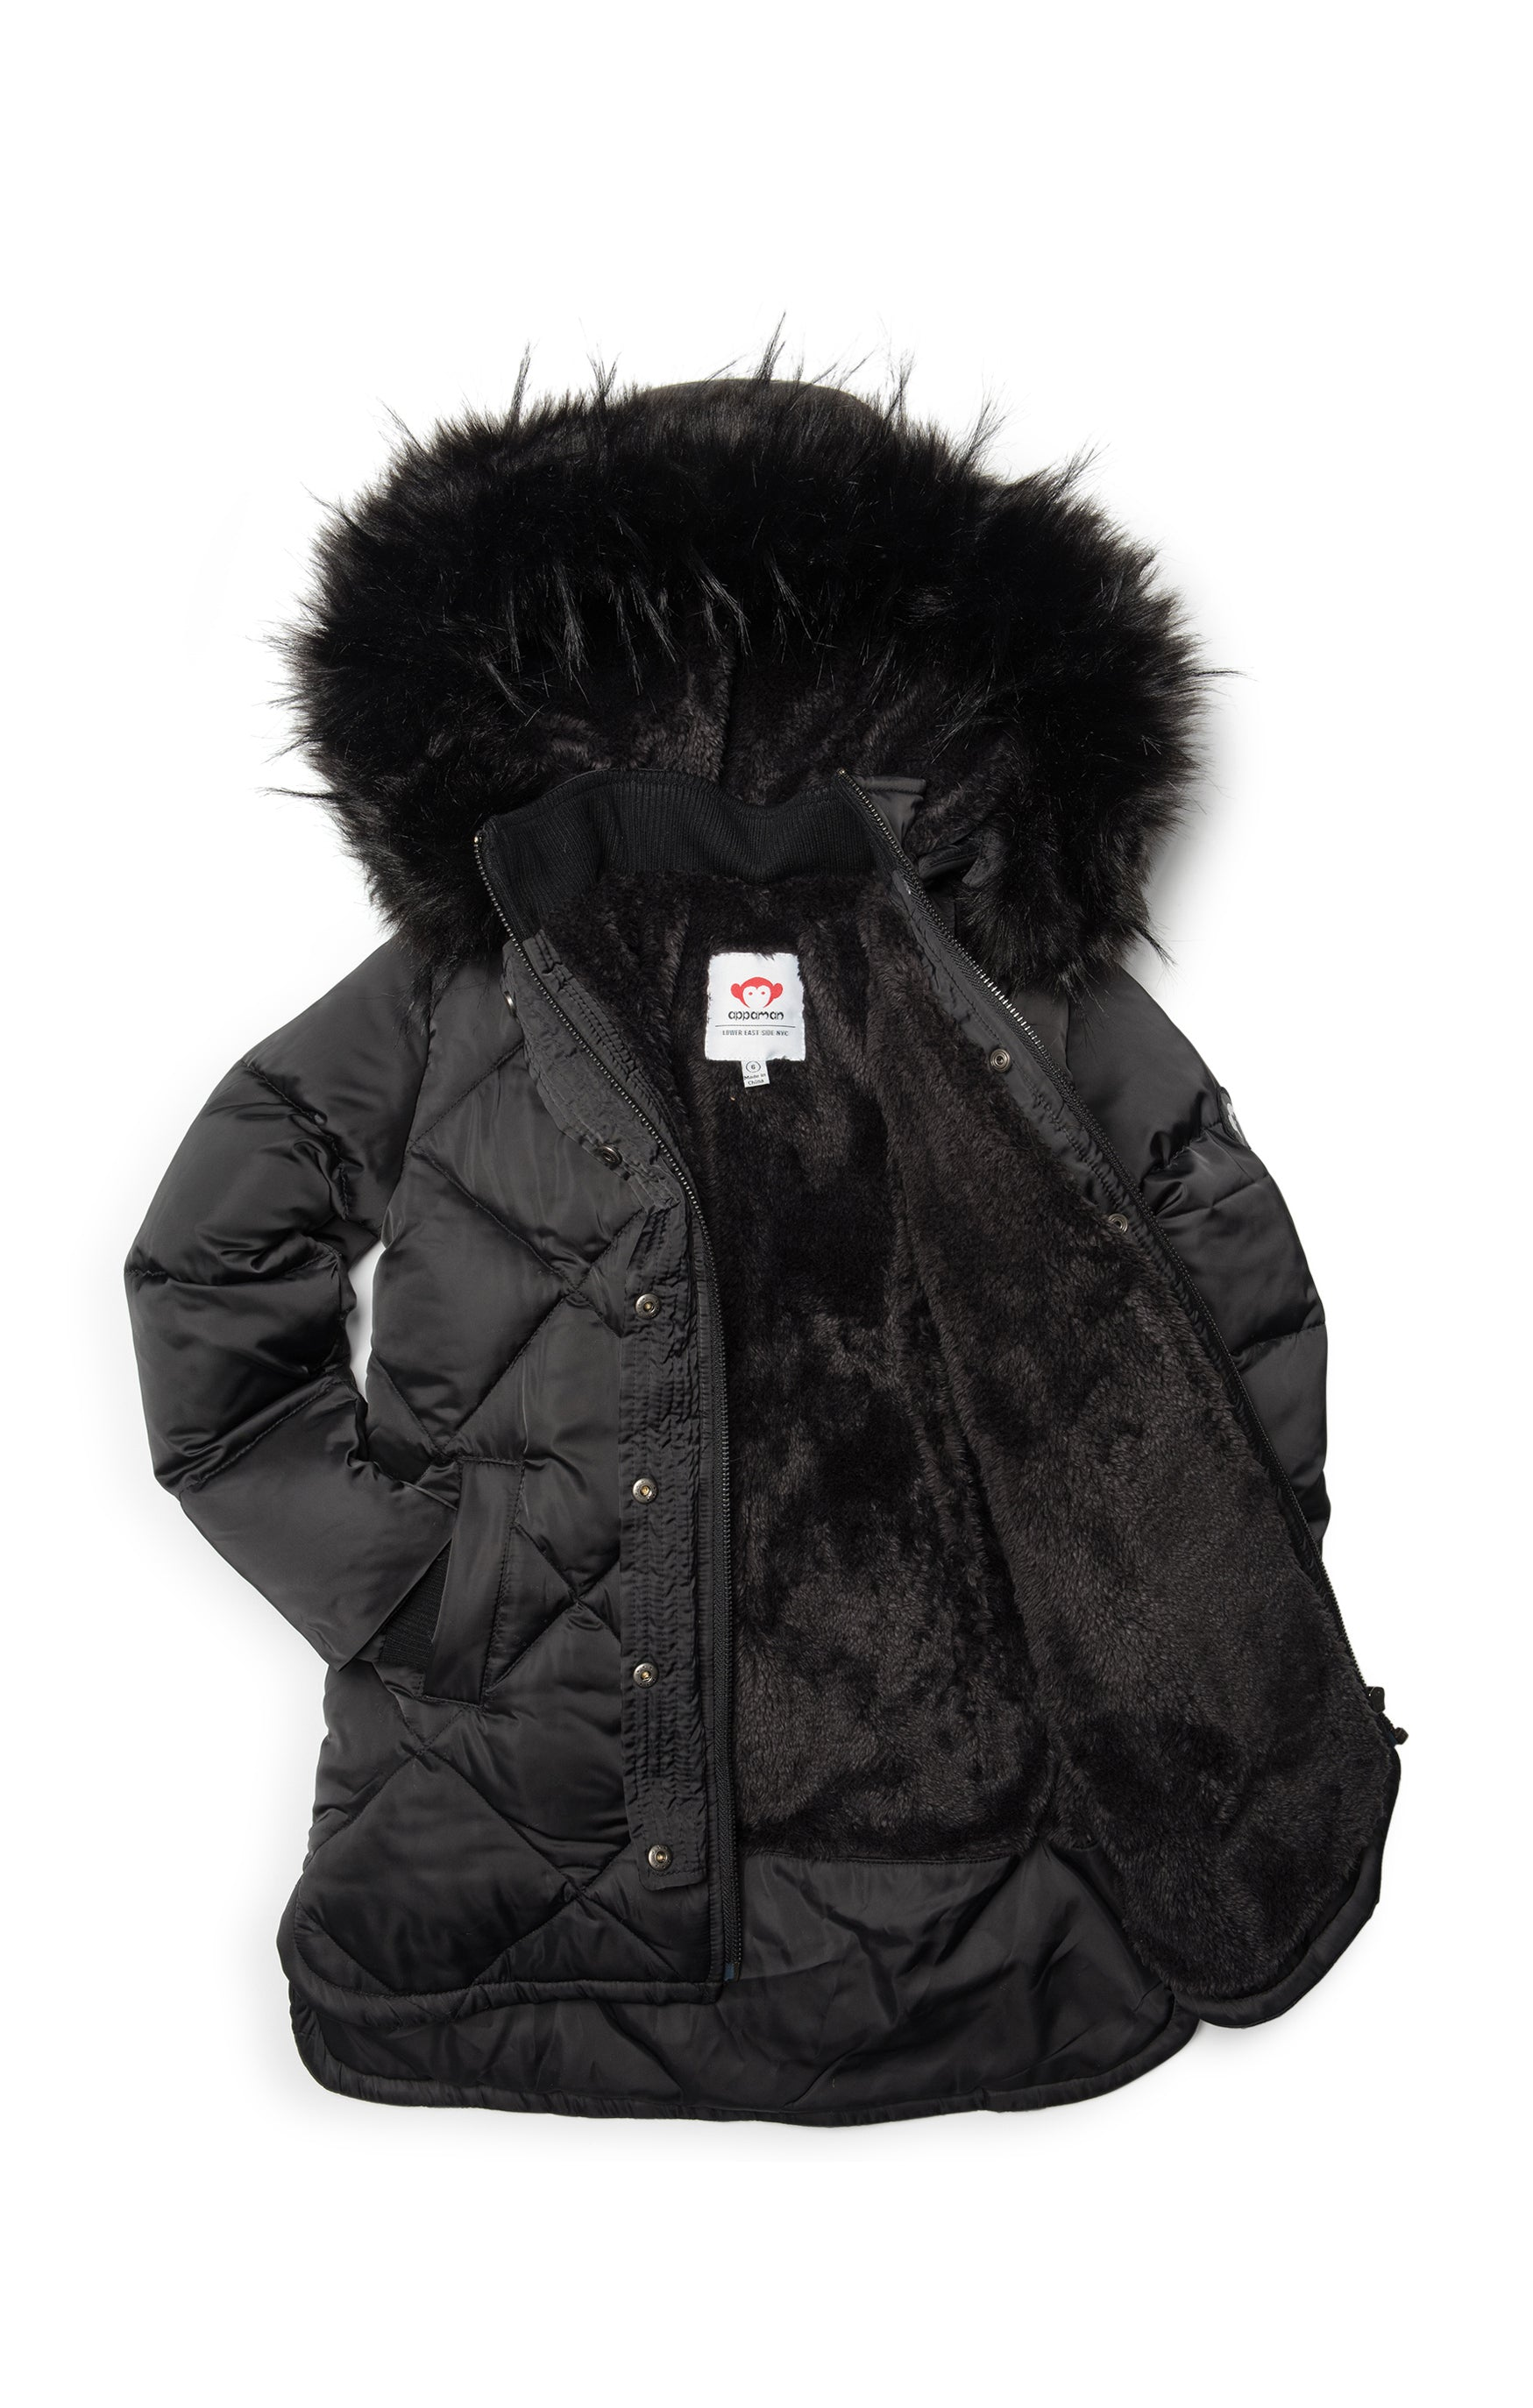 Appaman Sloan Puffer Coat - Black